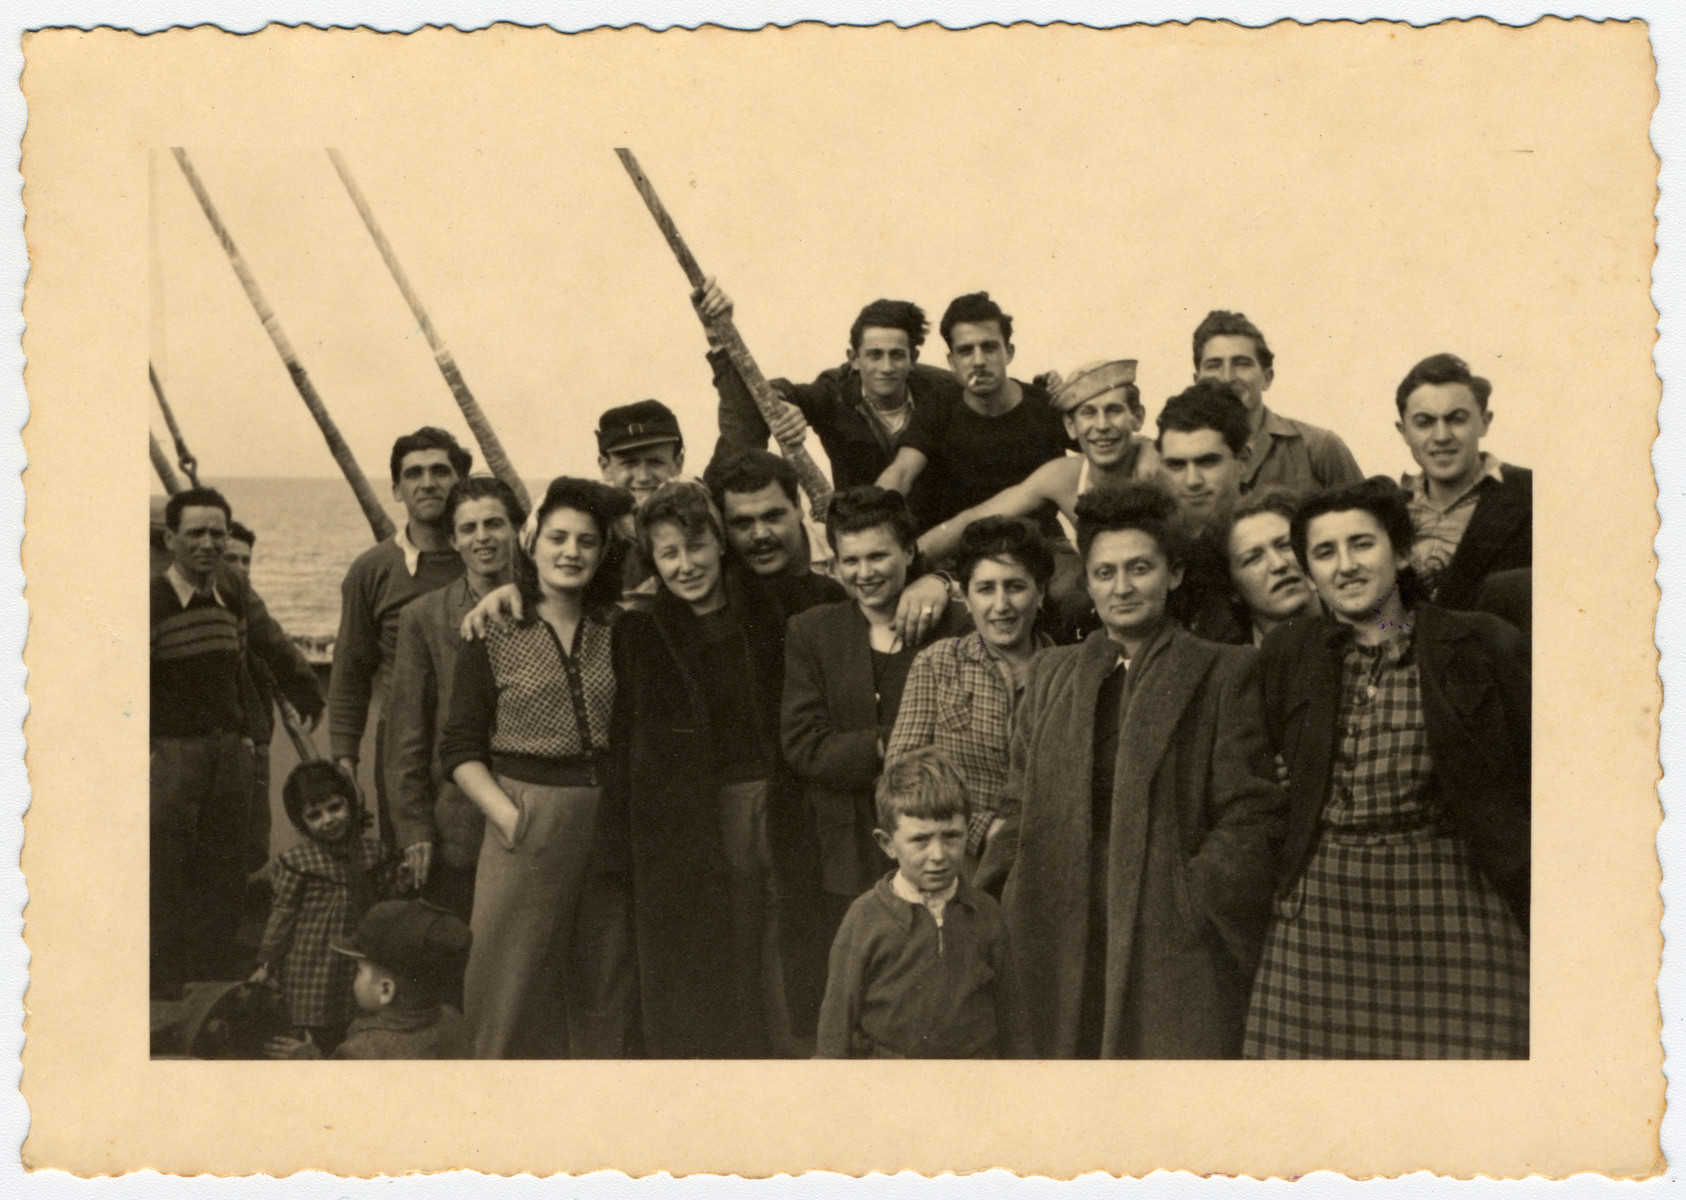 New immigrants gather on the deck of [what probably is] the Galila while en route to Israel from Romania.  Among those pictured are Avraham Heeres (third from the right in the white cap).